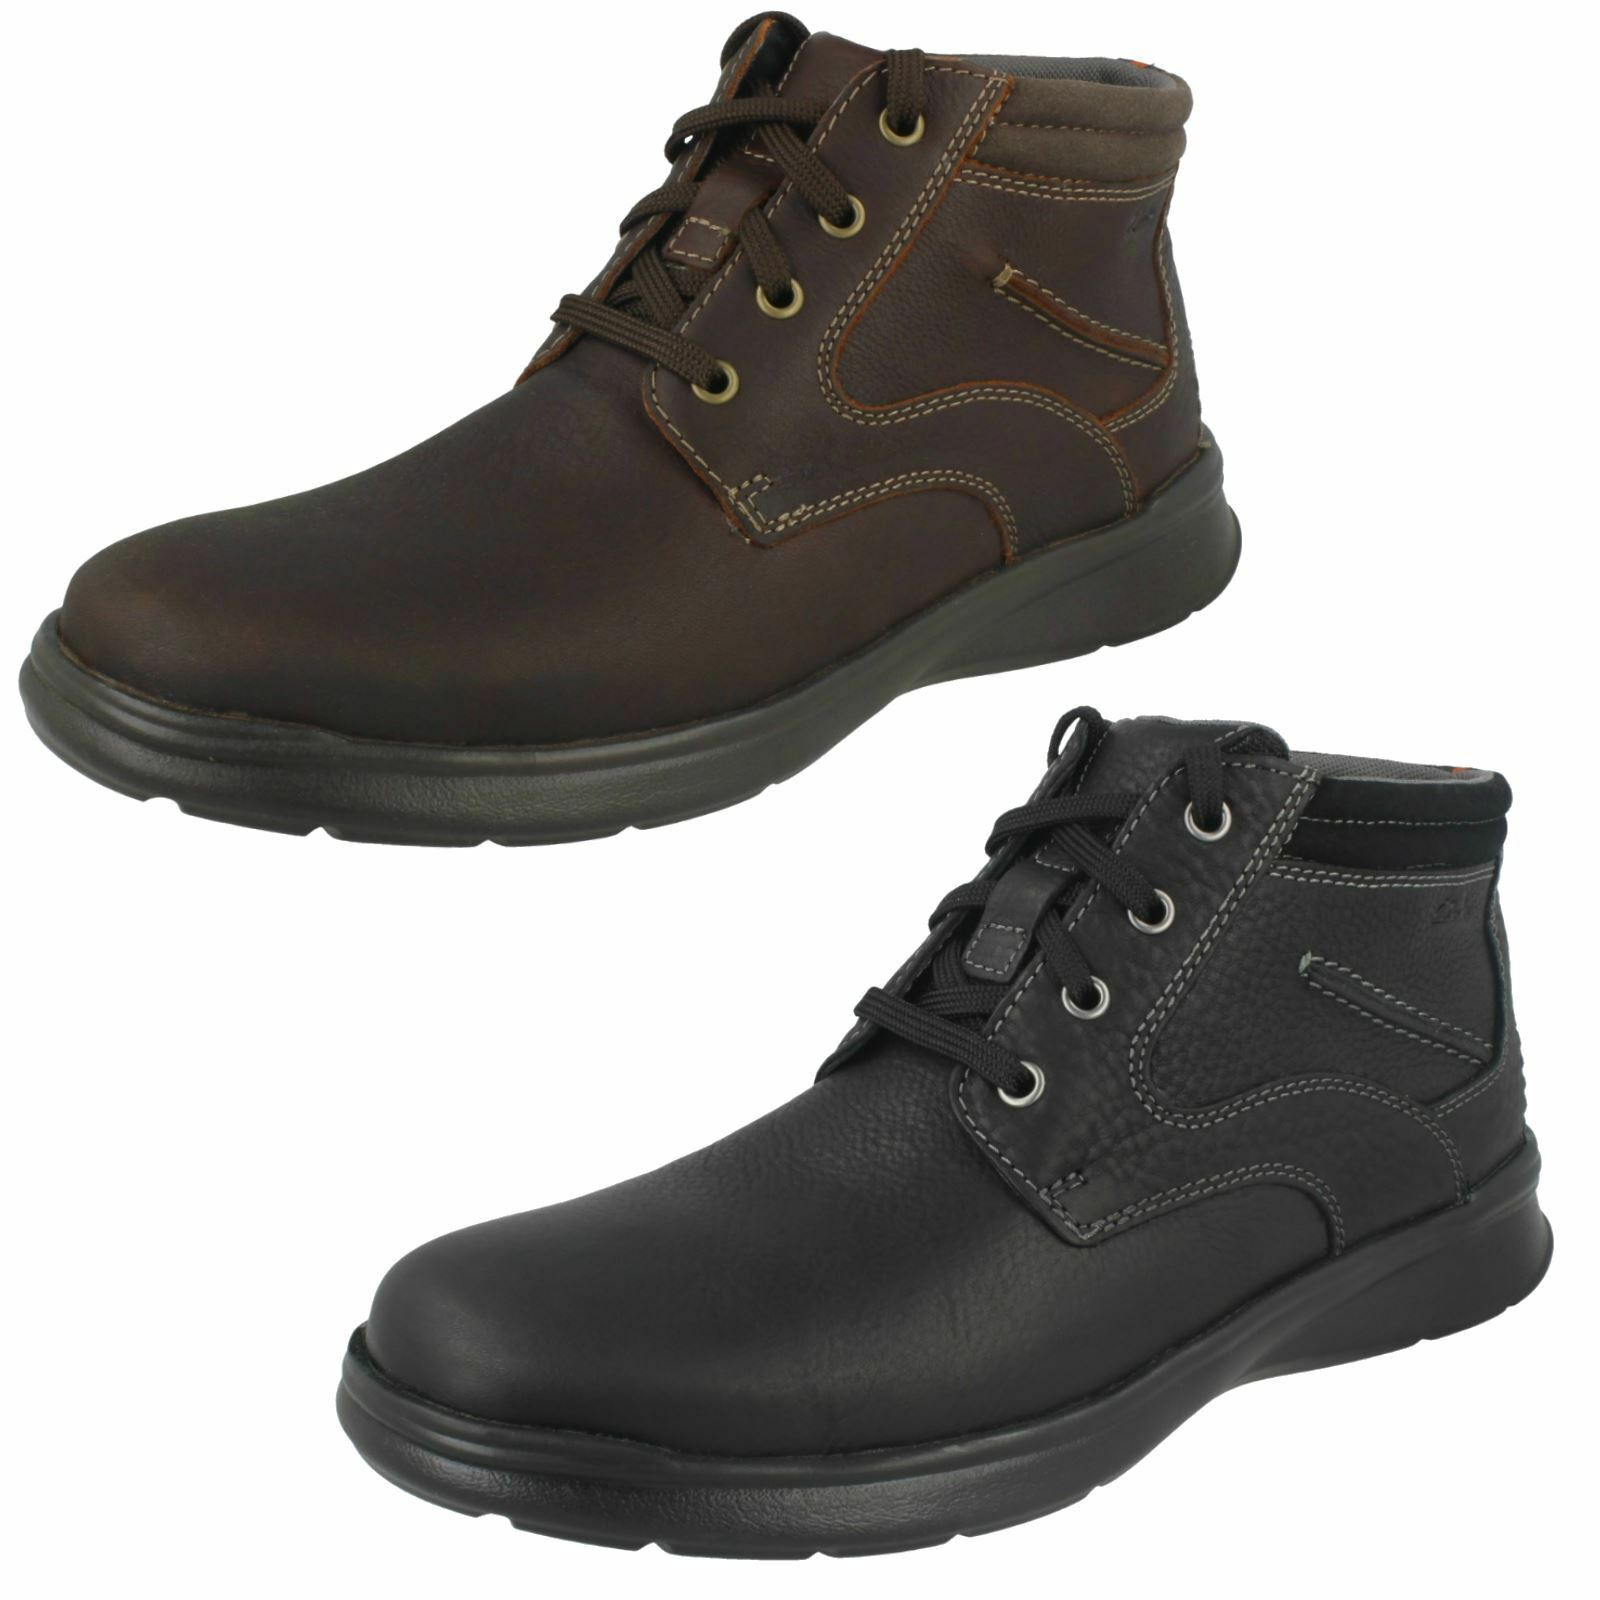 Mens Clarks Casual Lace Up Ankle Boots 'Cotrell Rise'